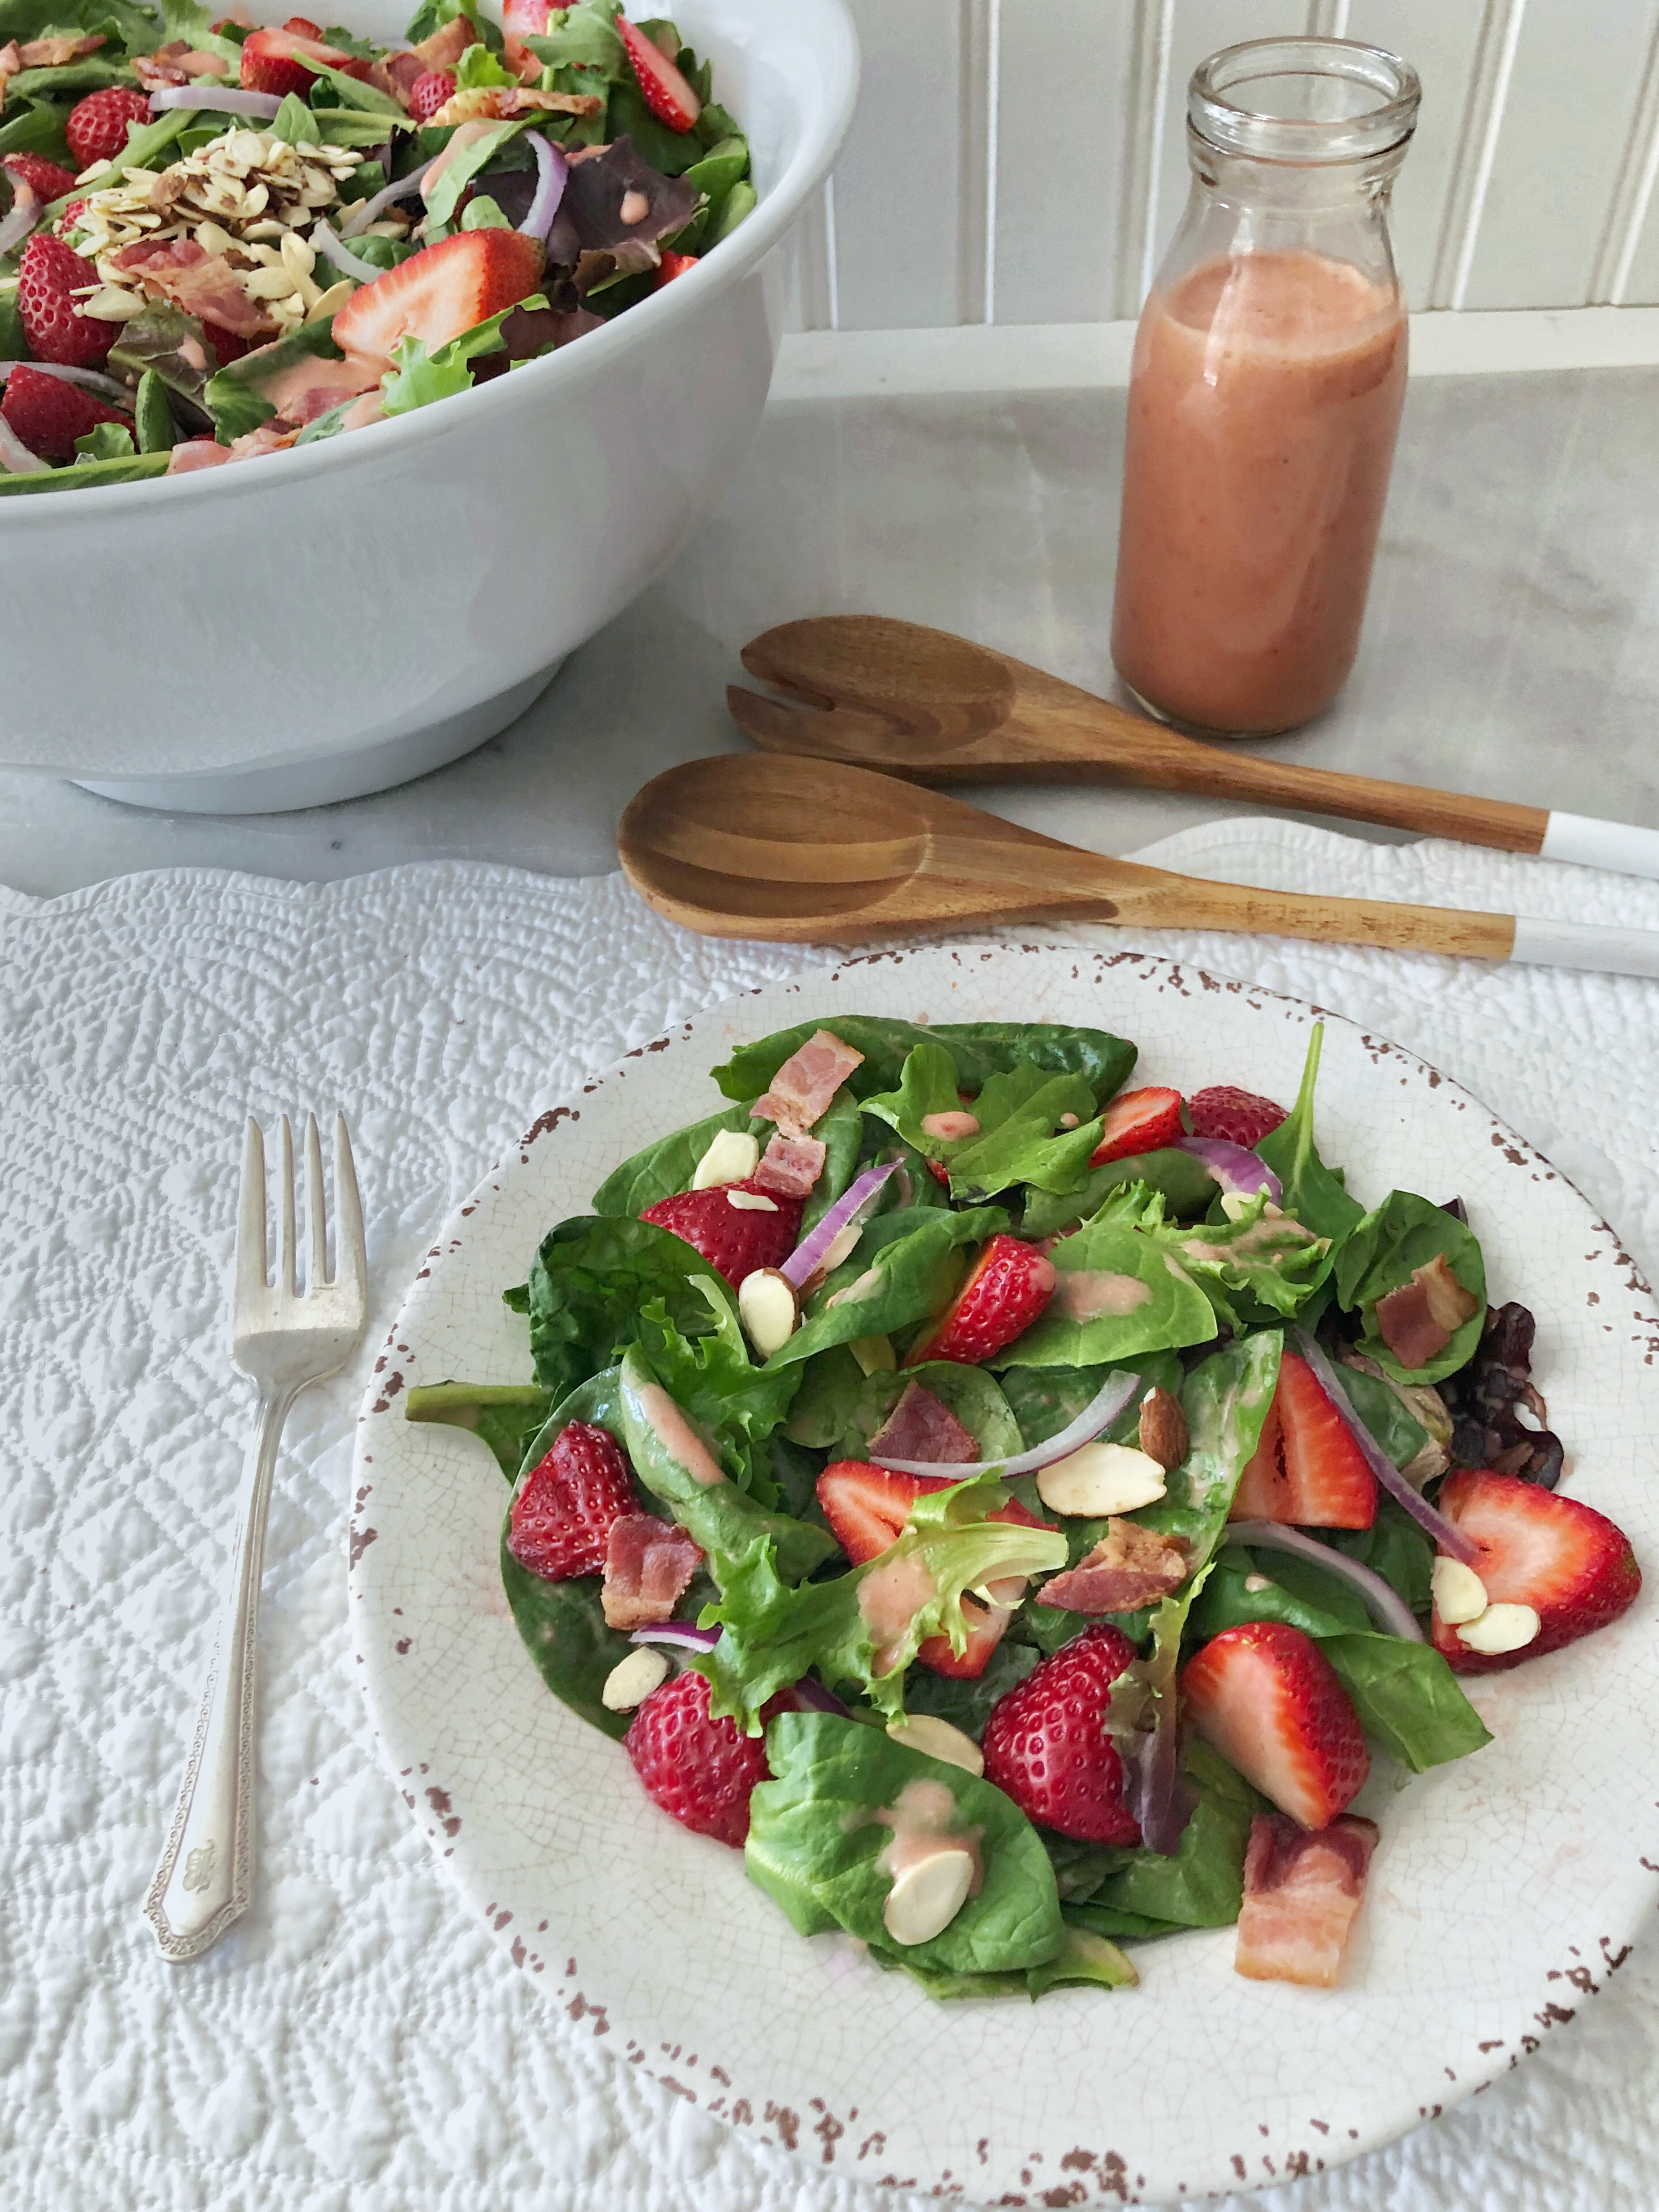 a small plate of green salad with fresh strawberries, spinach, bacon, toasted almonds and red onion.